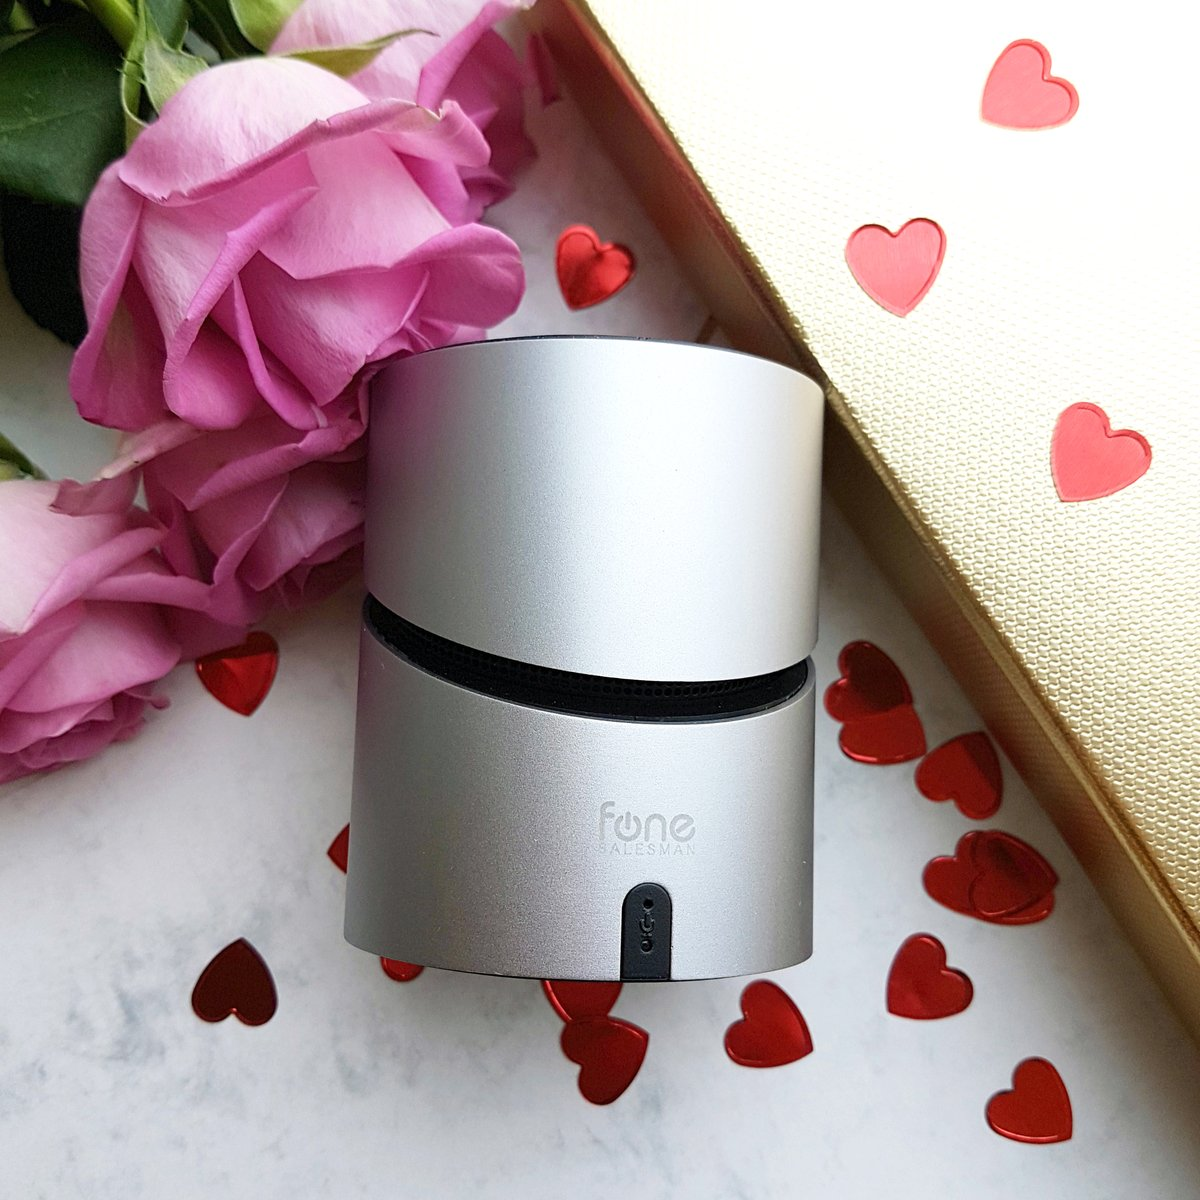 Happy #ValentinesDay from Fonesalesman   Our #MusiQi has a Bluetooth speaker for playing your favourite love songs... perfect for setting the mood #BluetoothSpeaker #WirelessCharger #TechLovers pic.twitter.com/F72yRIYkaz